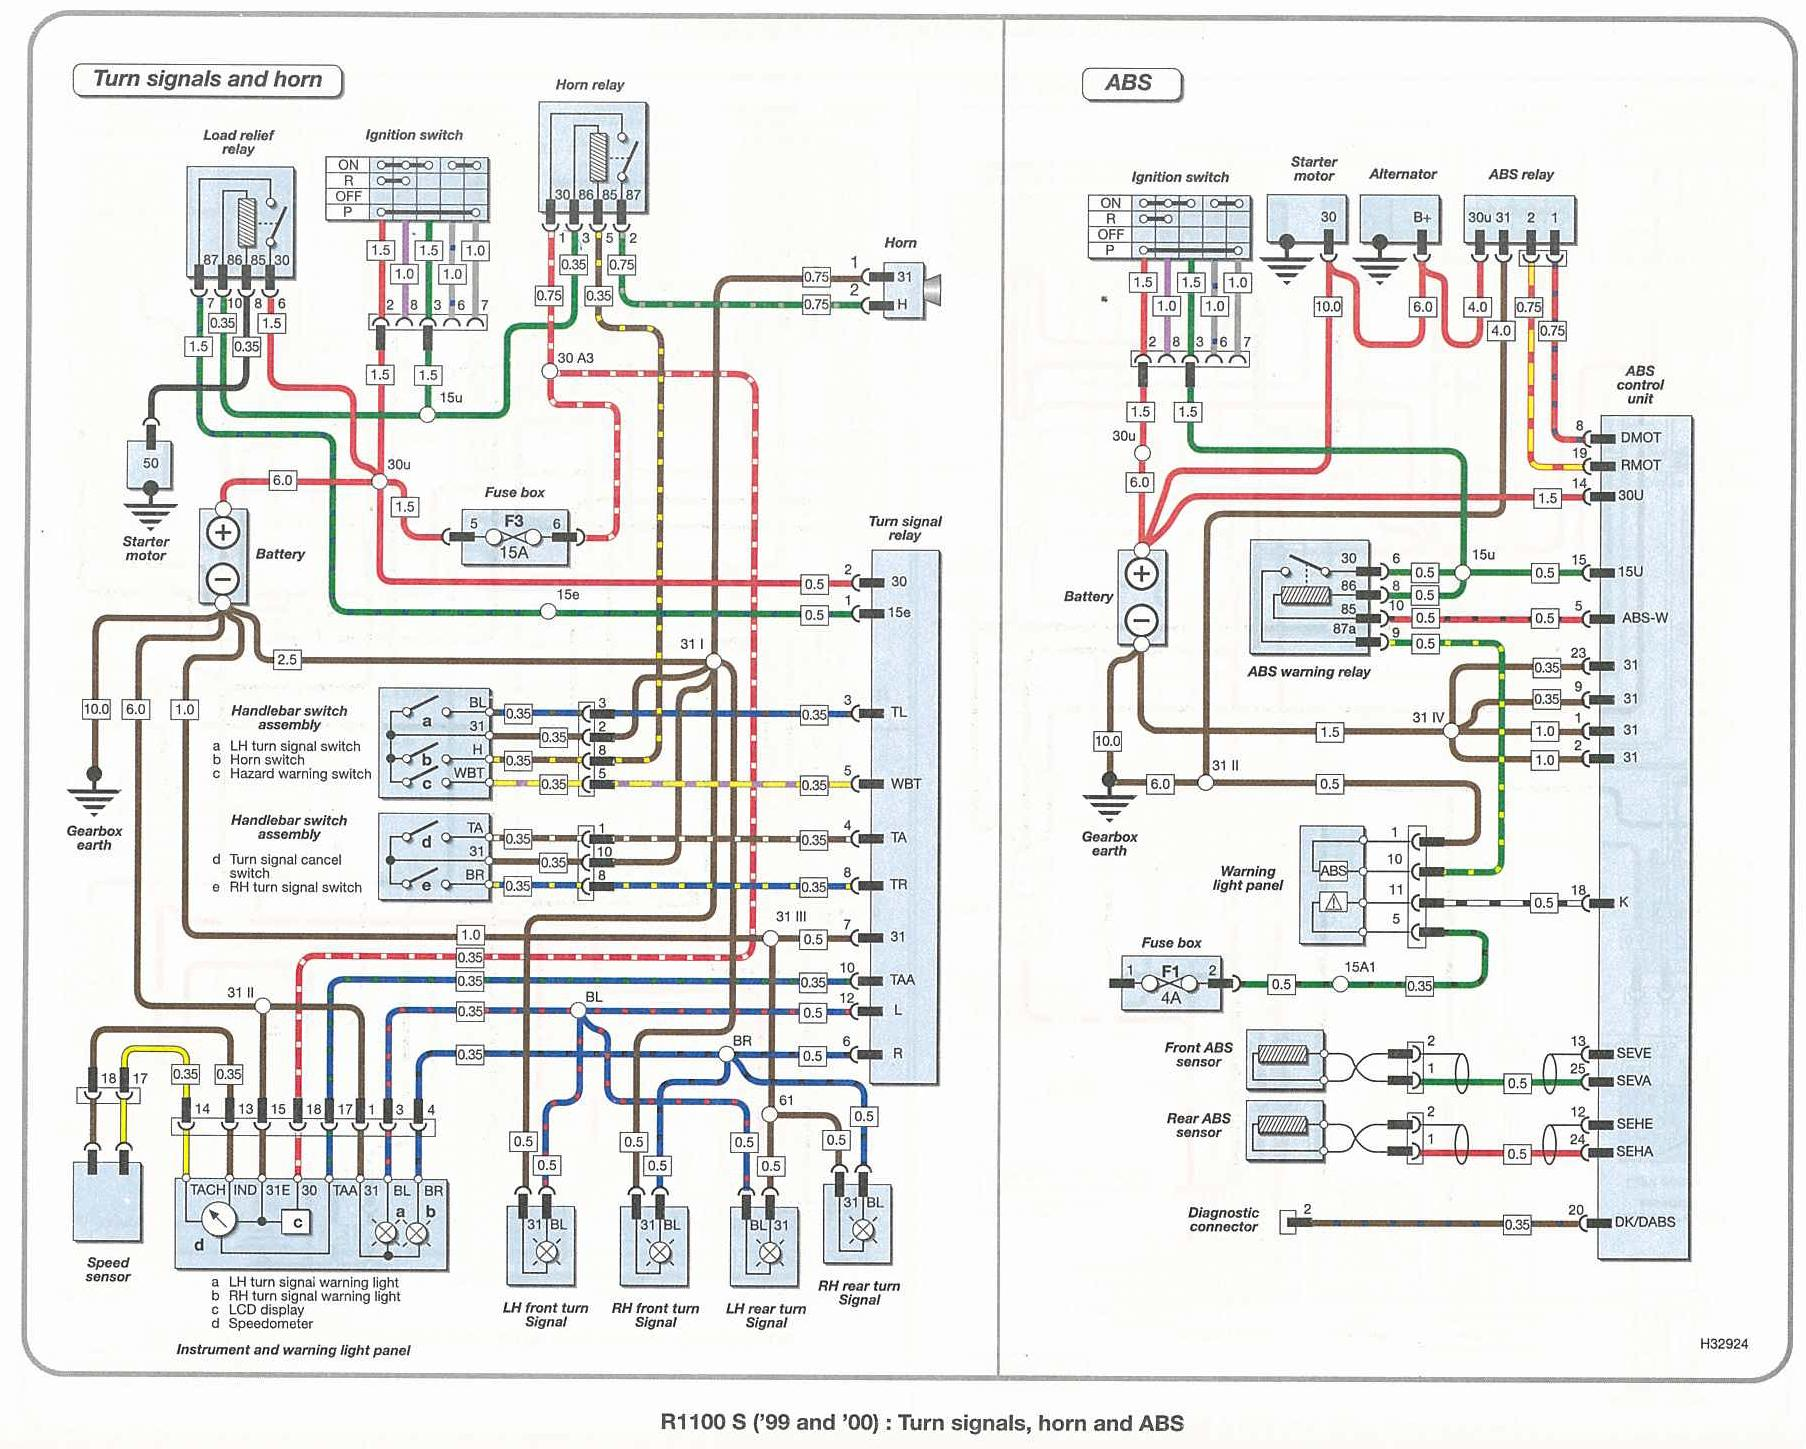 wiring03 bmw wiring diagram bmw wiring diagrams e39 \u2022 wiring diagrams j E46 Wiring Diagram PDF at edmiracle.co